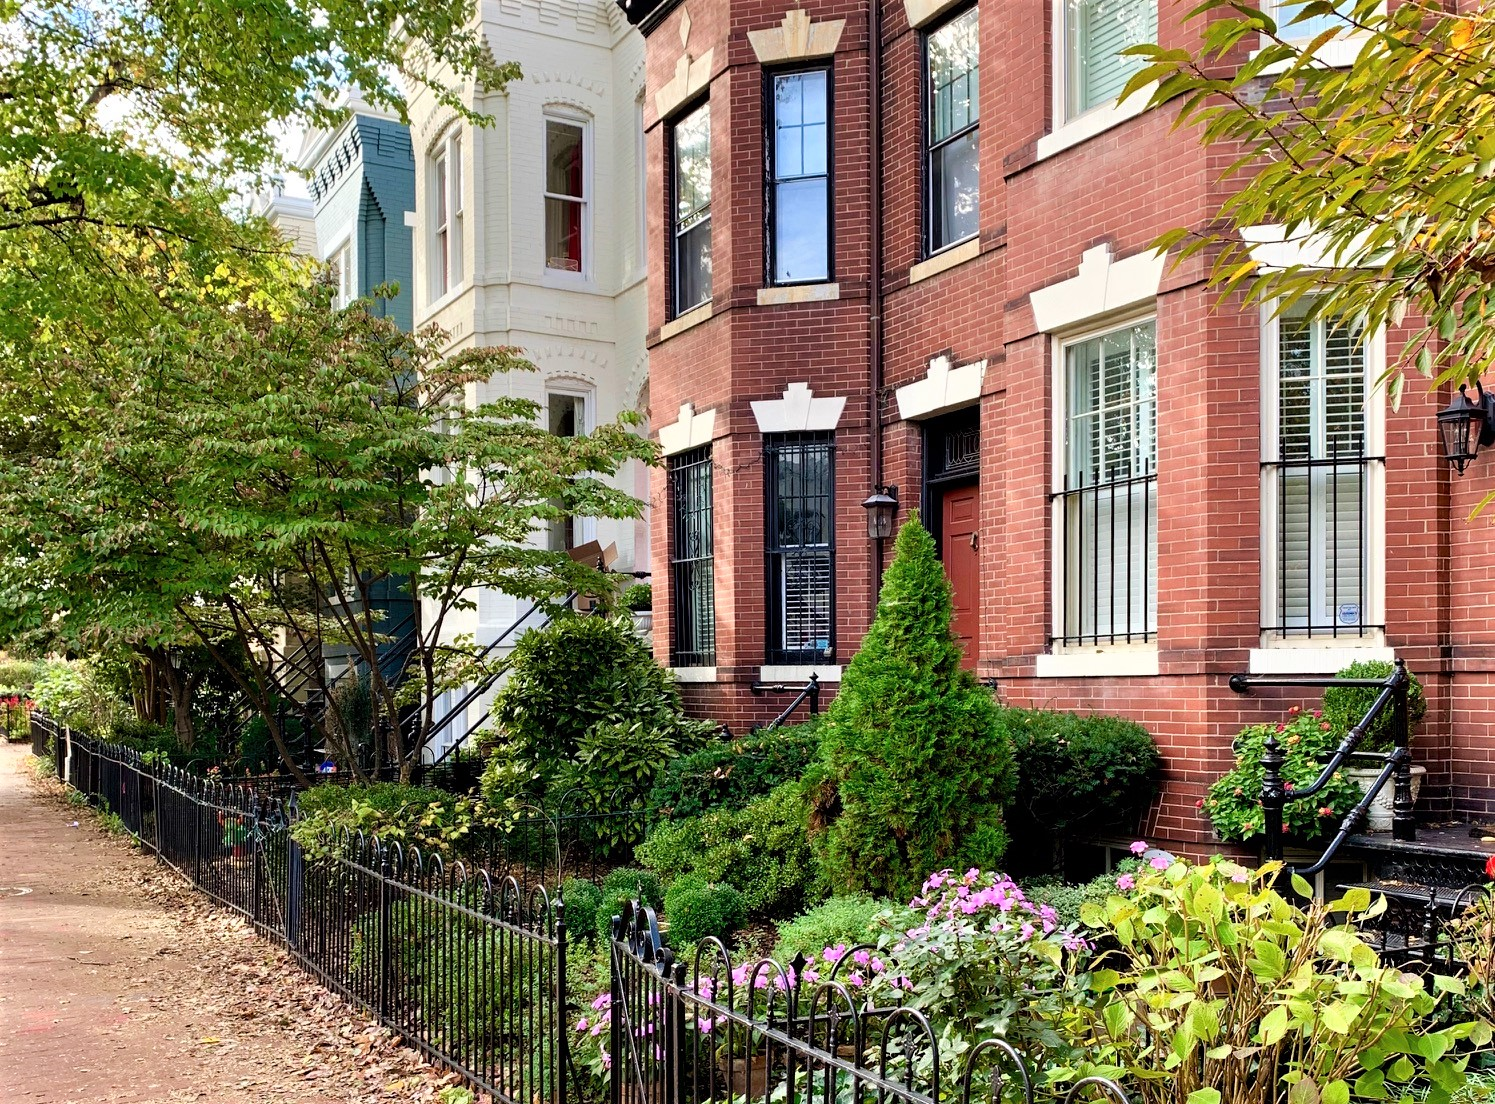 Washington, DC Townhomes For Sale. Northeast Capitol Hill. Artyom Shmatko Luxury Real Estate Agent